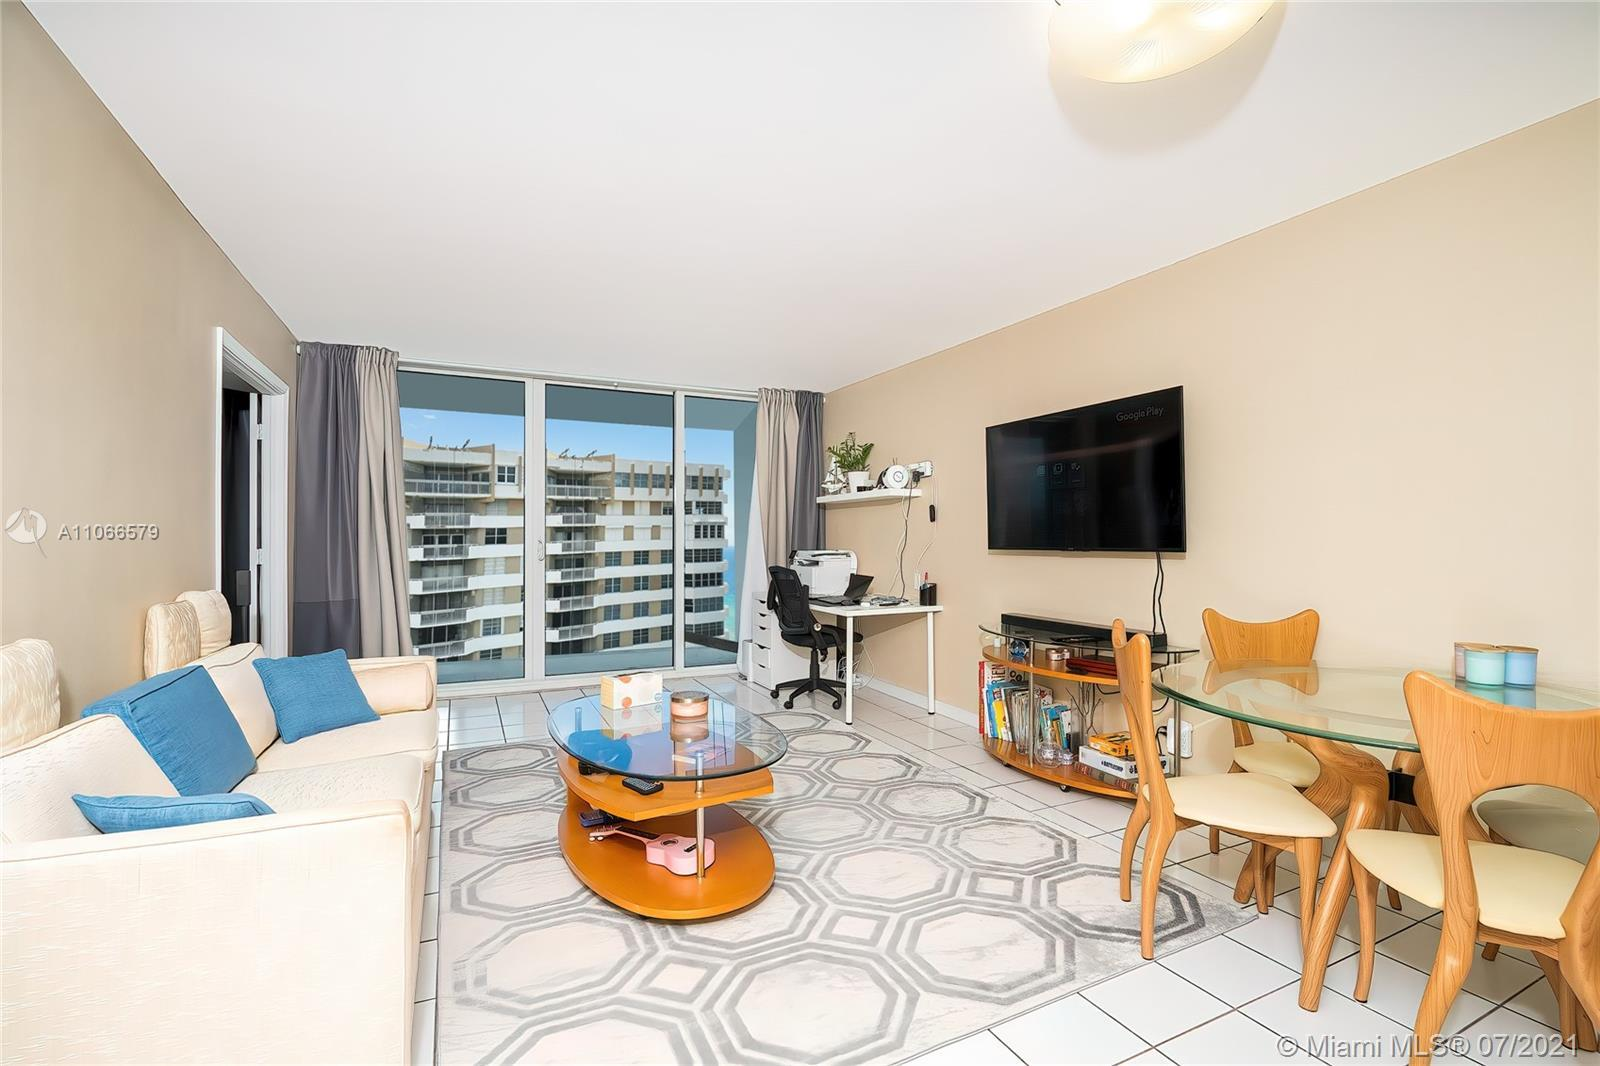 Amazing one bedroom rented unit in luxury Parker Plaza!! At this time family member is paying $1350,